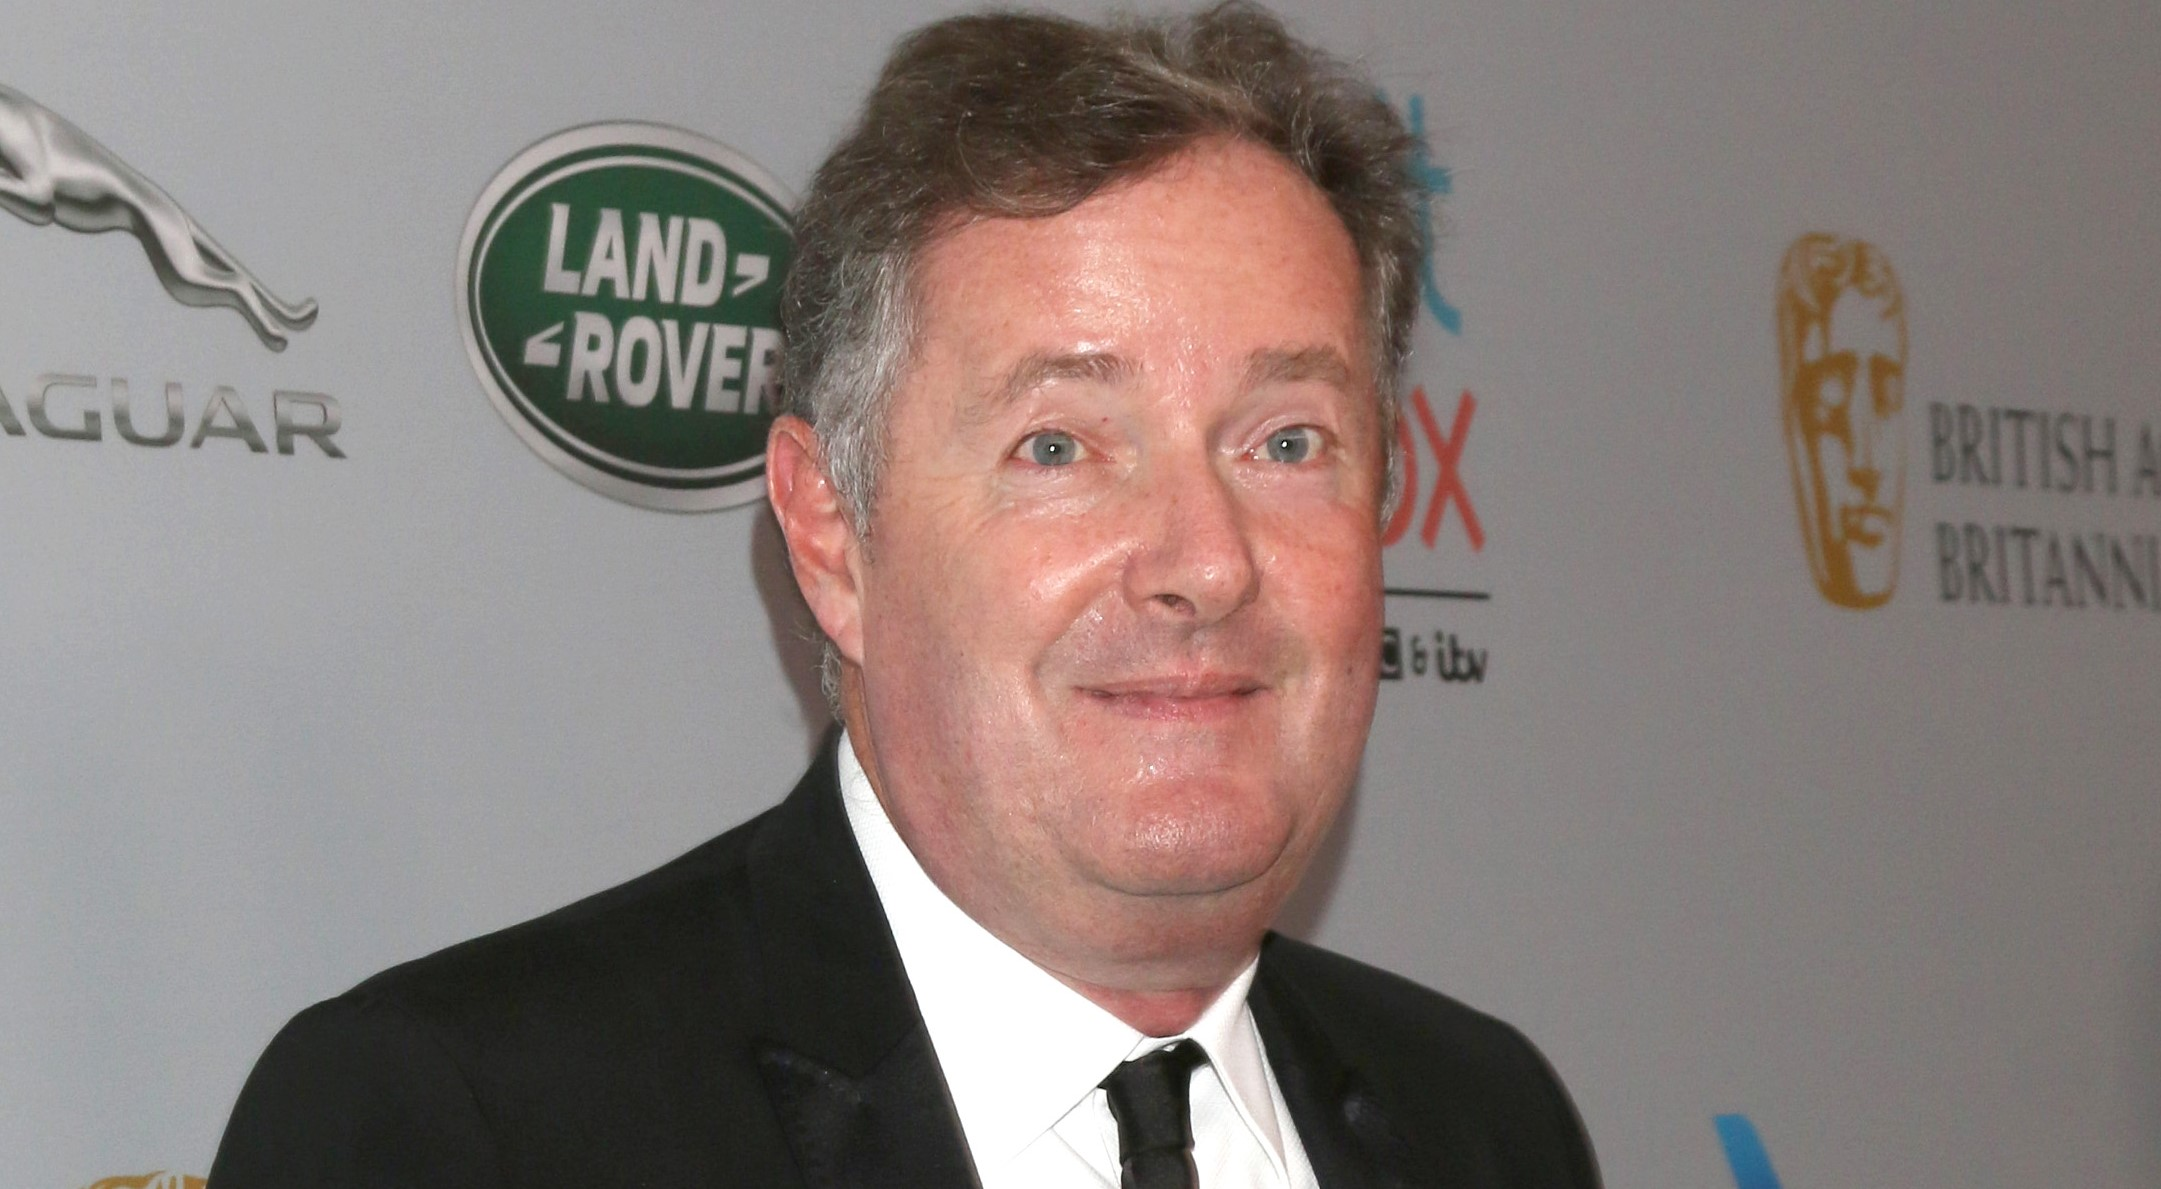 Piers Morgan hits back at 'shocking abuse' on social media as he prepares for GMB return